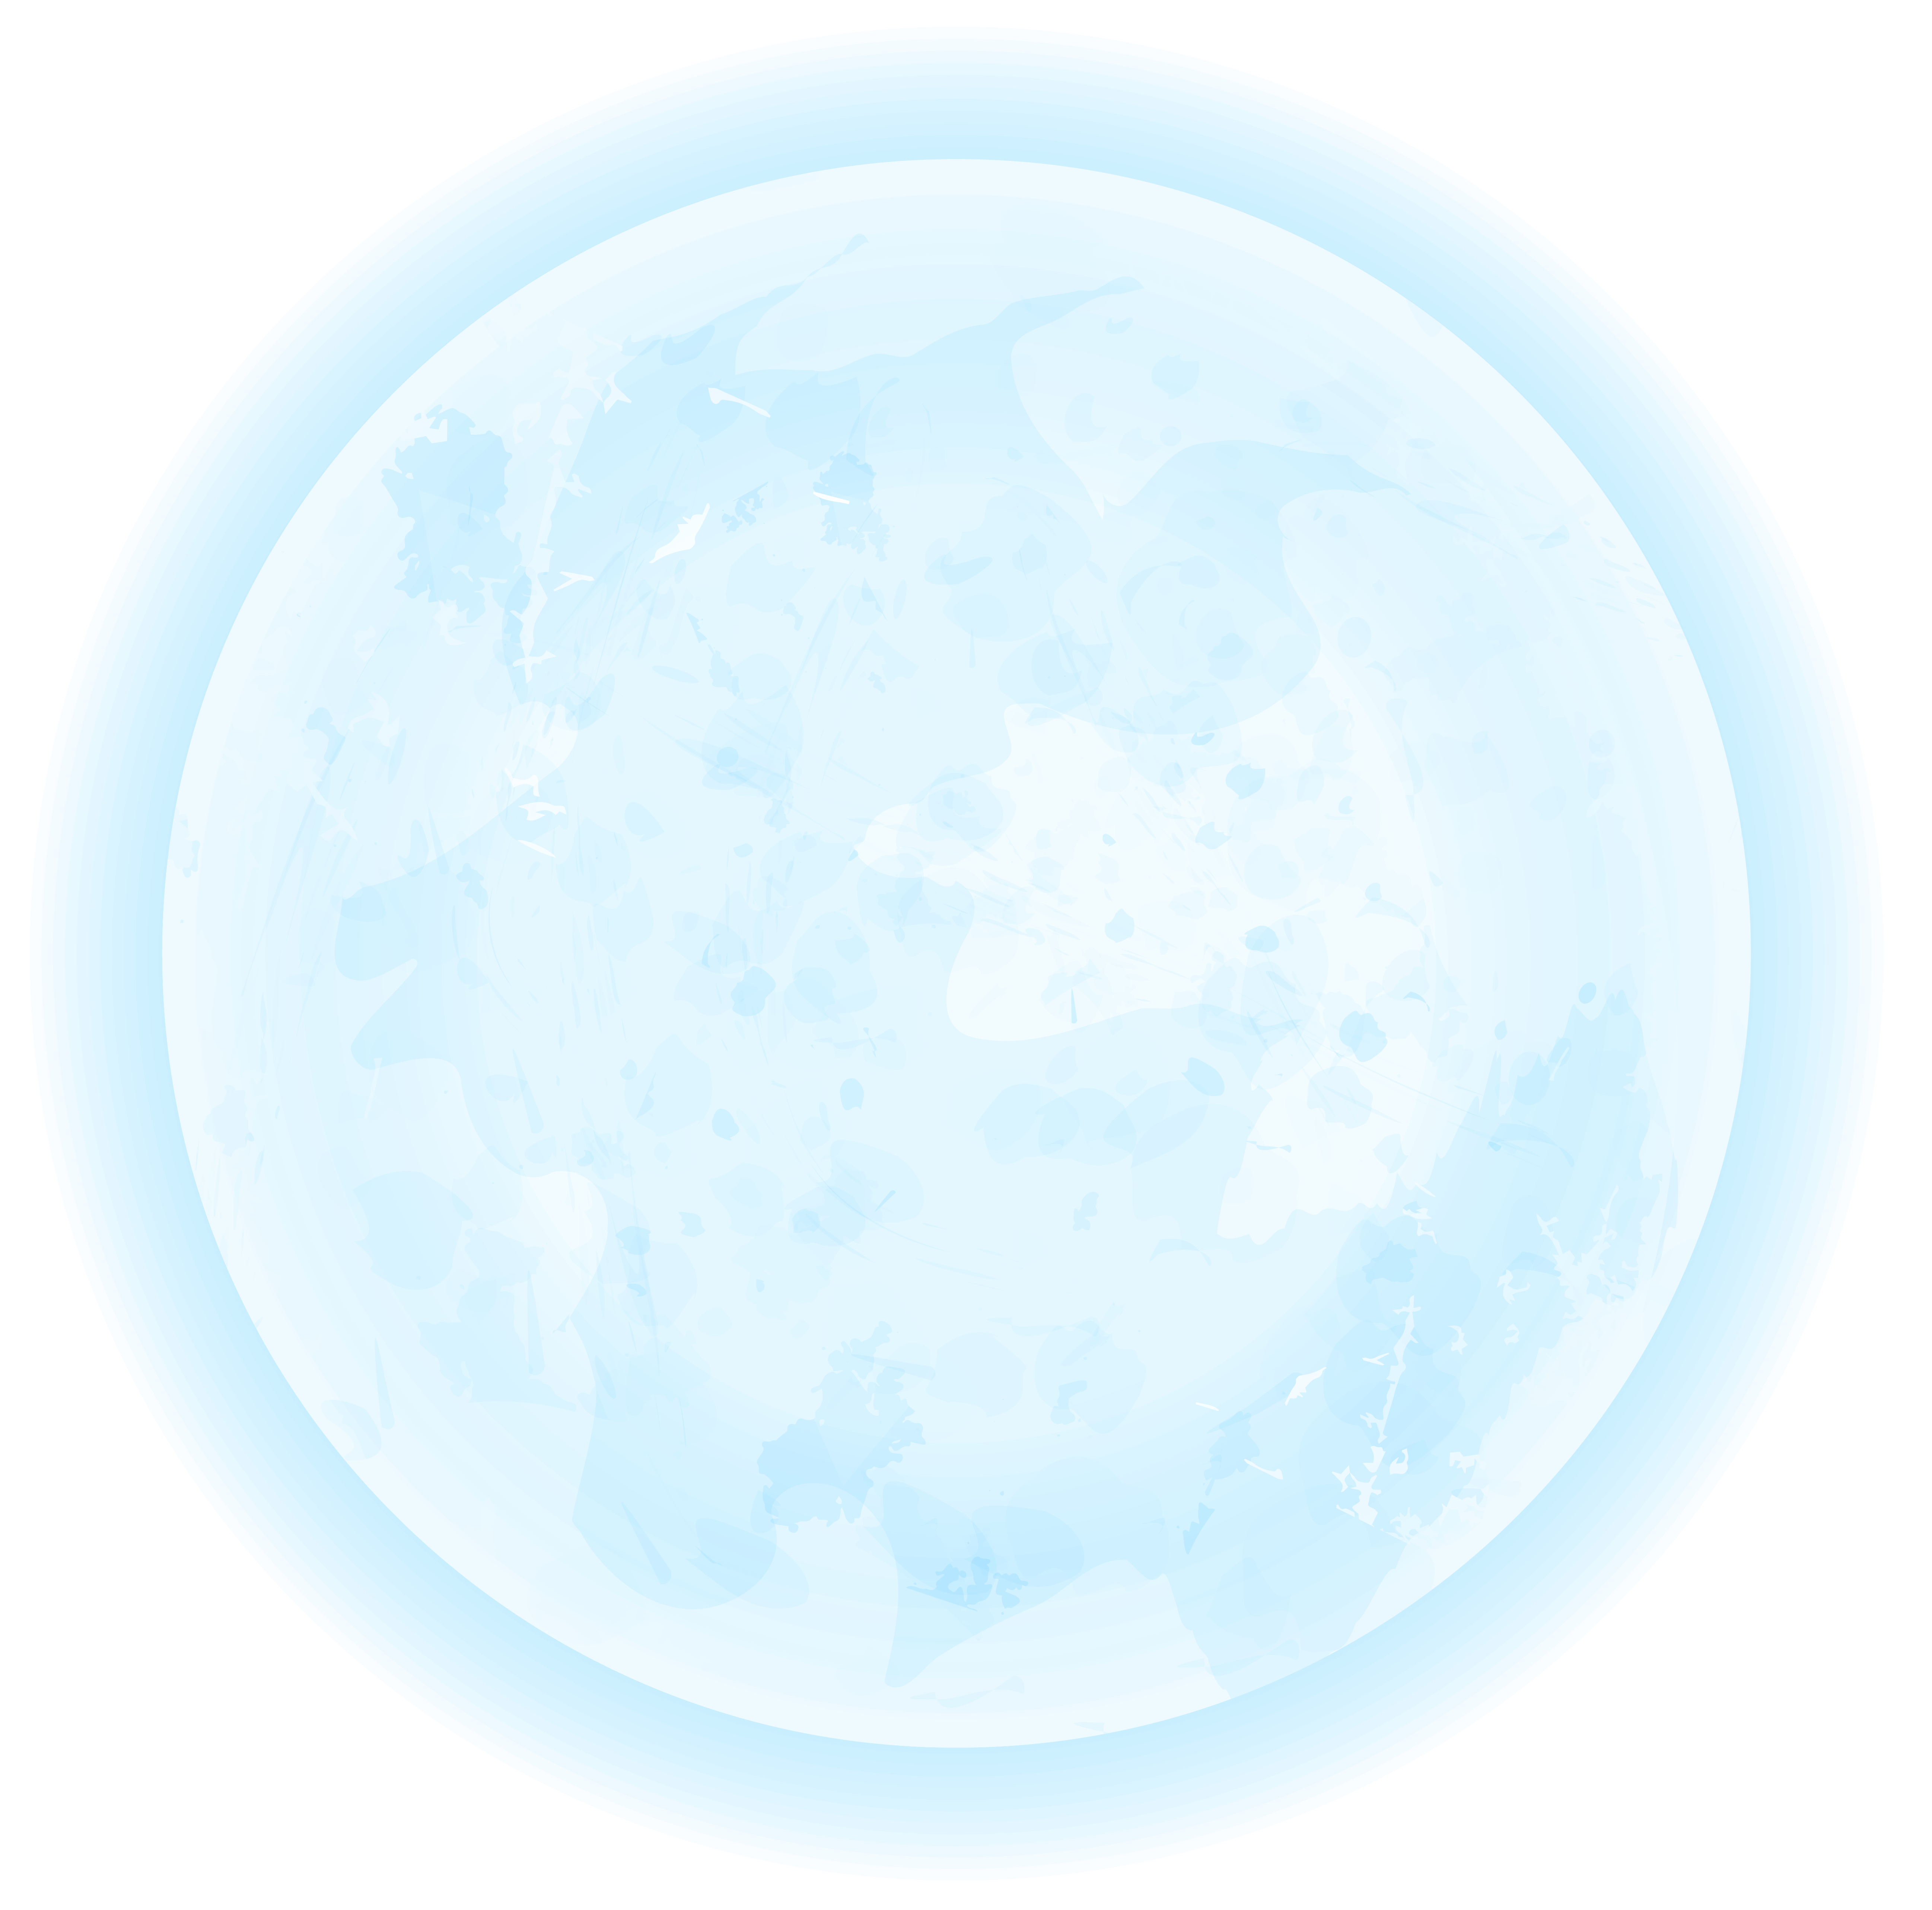 Clipart image gallery yopriceville. Blue moon png clip art library download